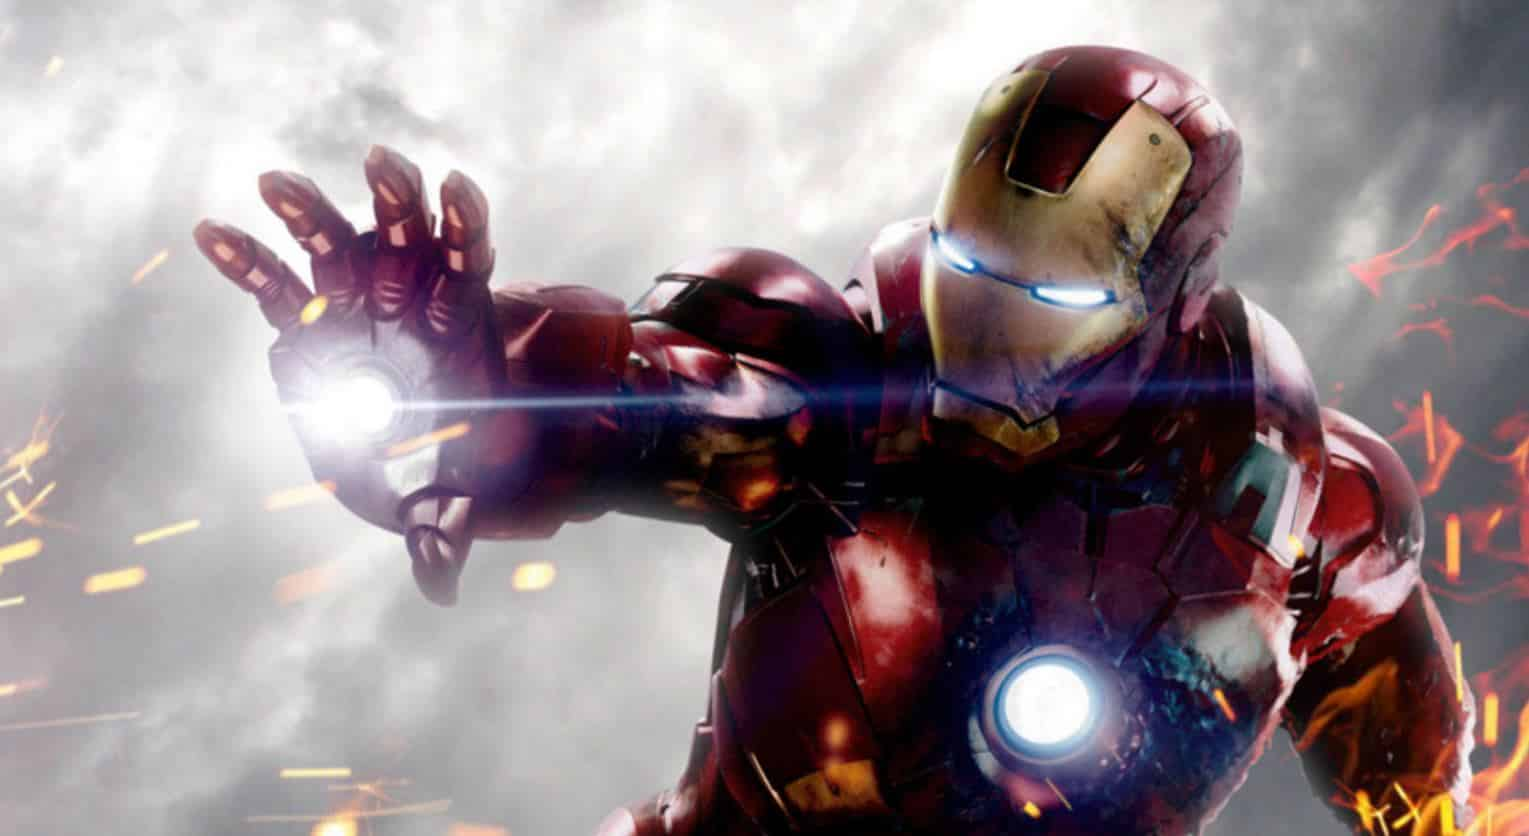 Check Out This Close-Up Of Iron Man's New Arc Reactor